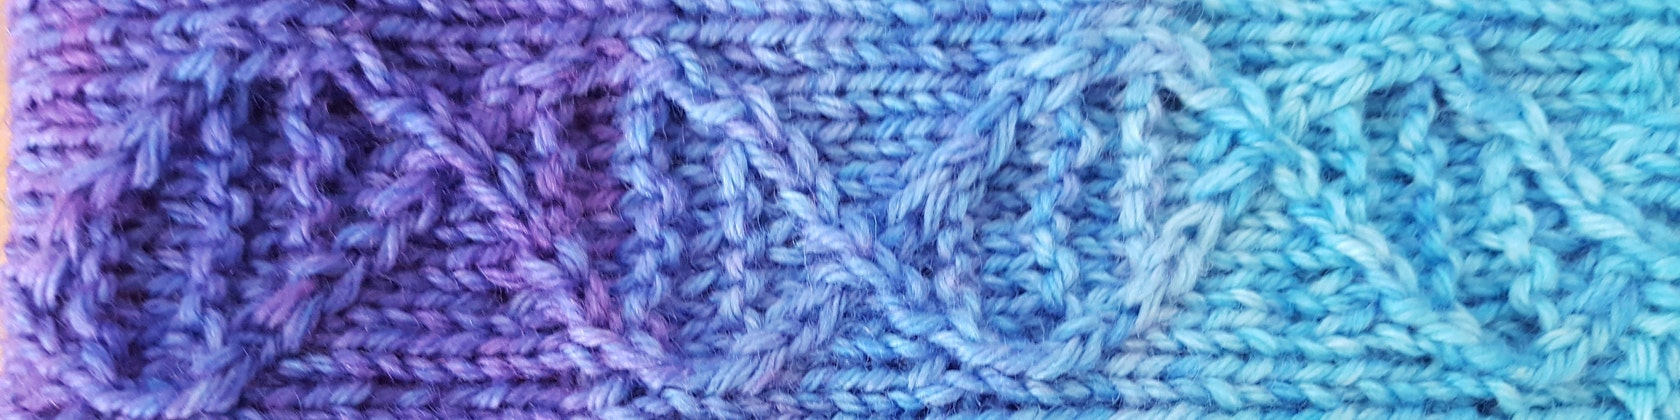 Hand Dyed Yarns by ChemKnitsCreations on Etsy